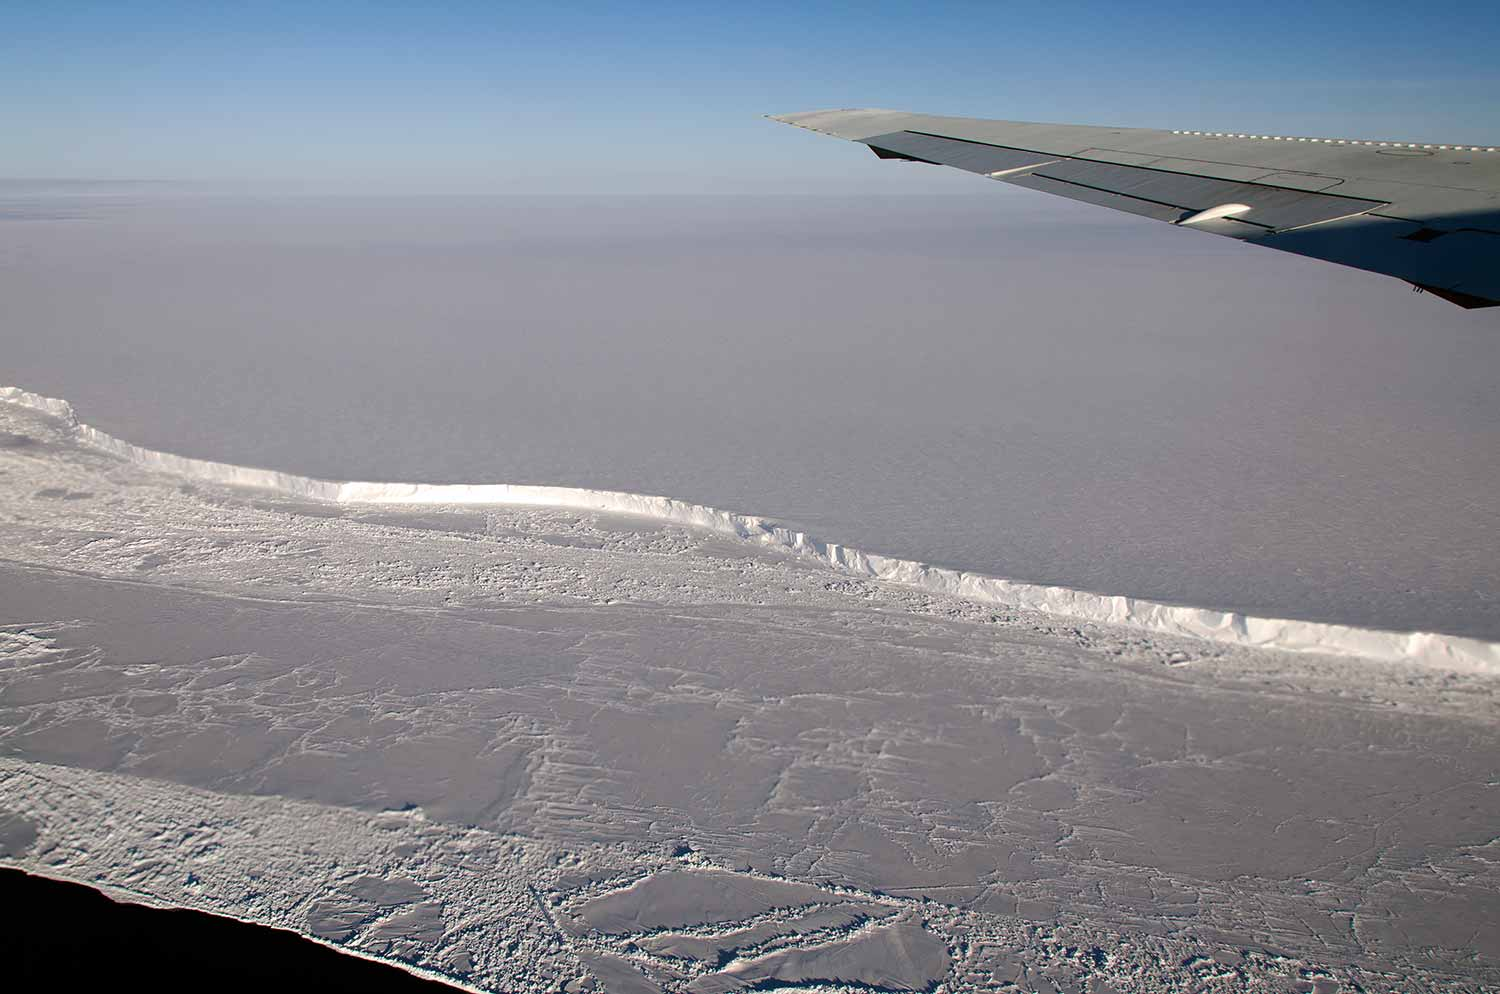 Photo: Antarctica's Brunt Ice Shelf photographed in October 2011